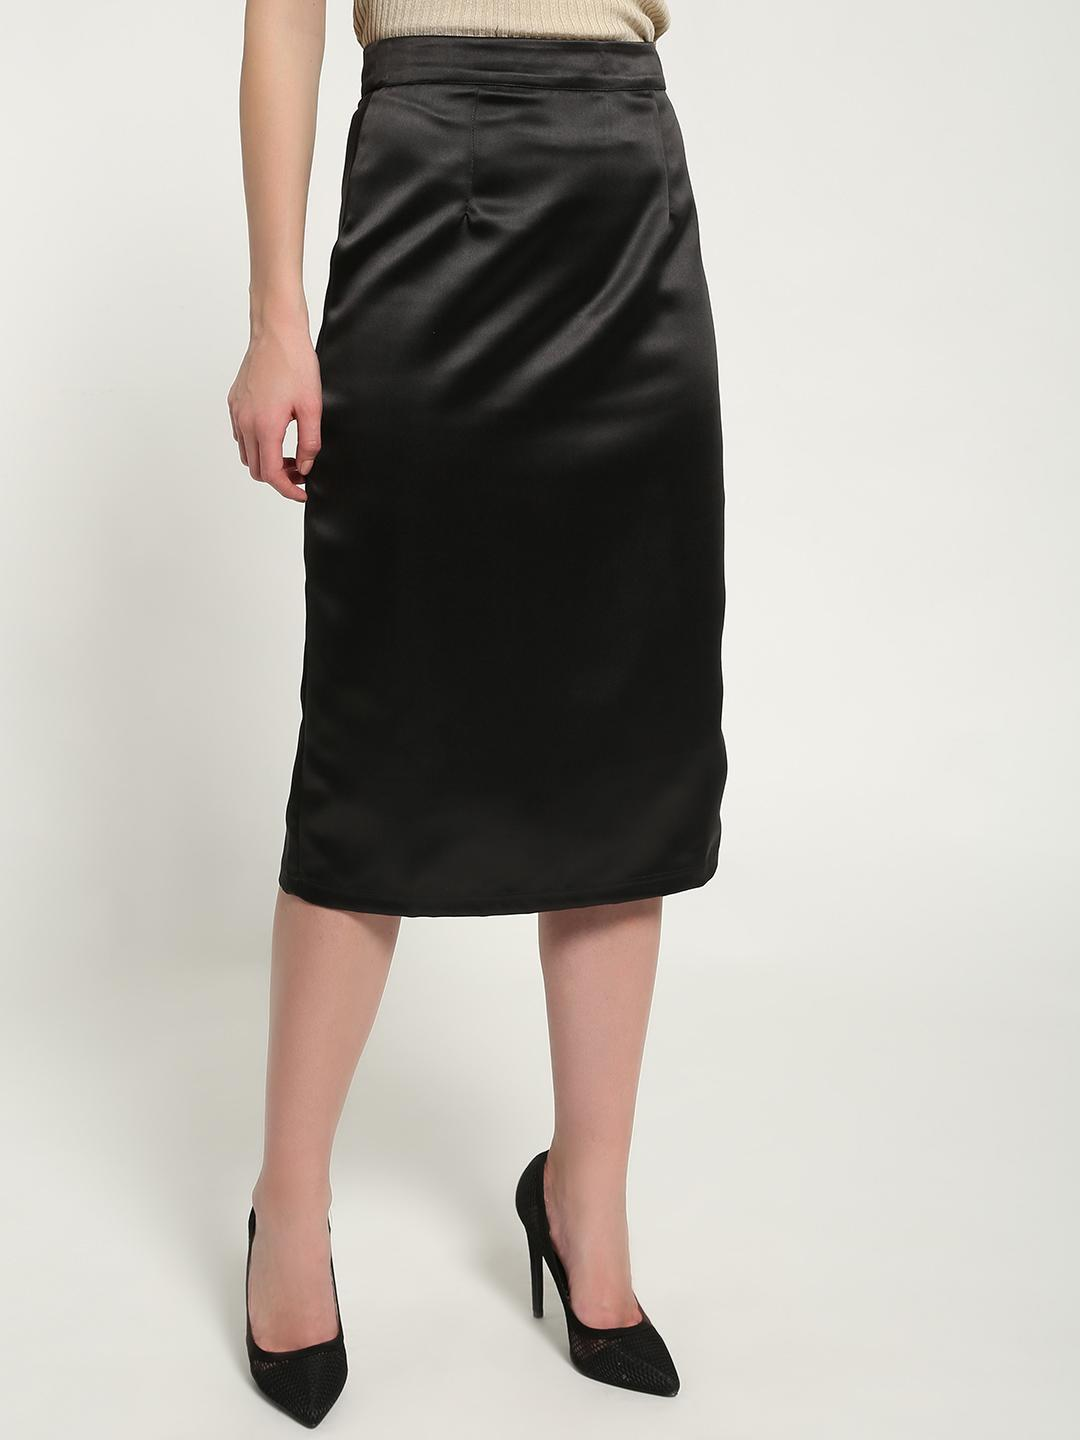 KOOVS Black Satin High-Waist Midi Skirt 1